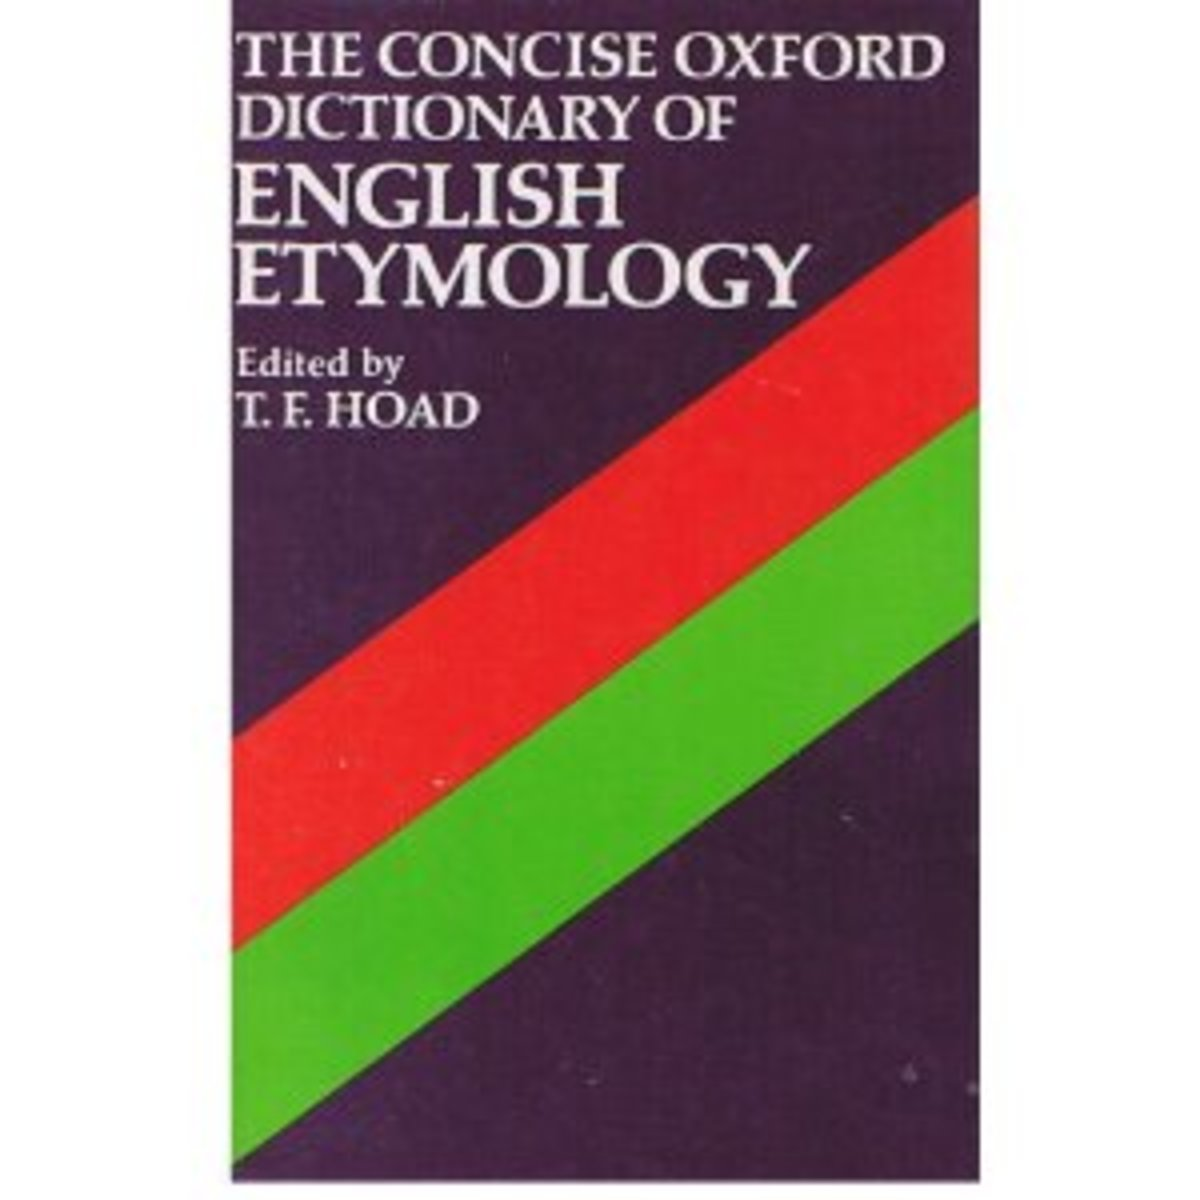 One of the best and most popular etymological dictionaries of the English language is the one published by Oxford University.